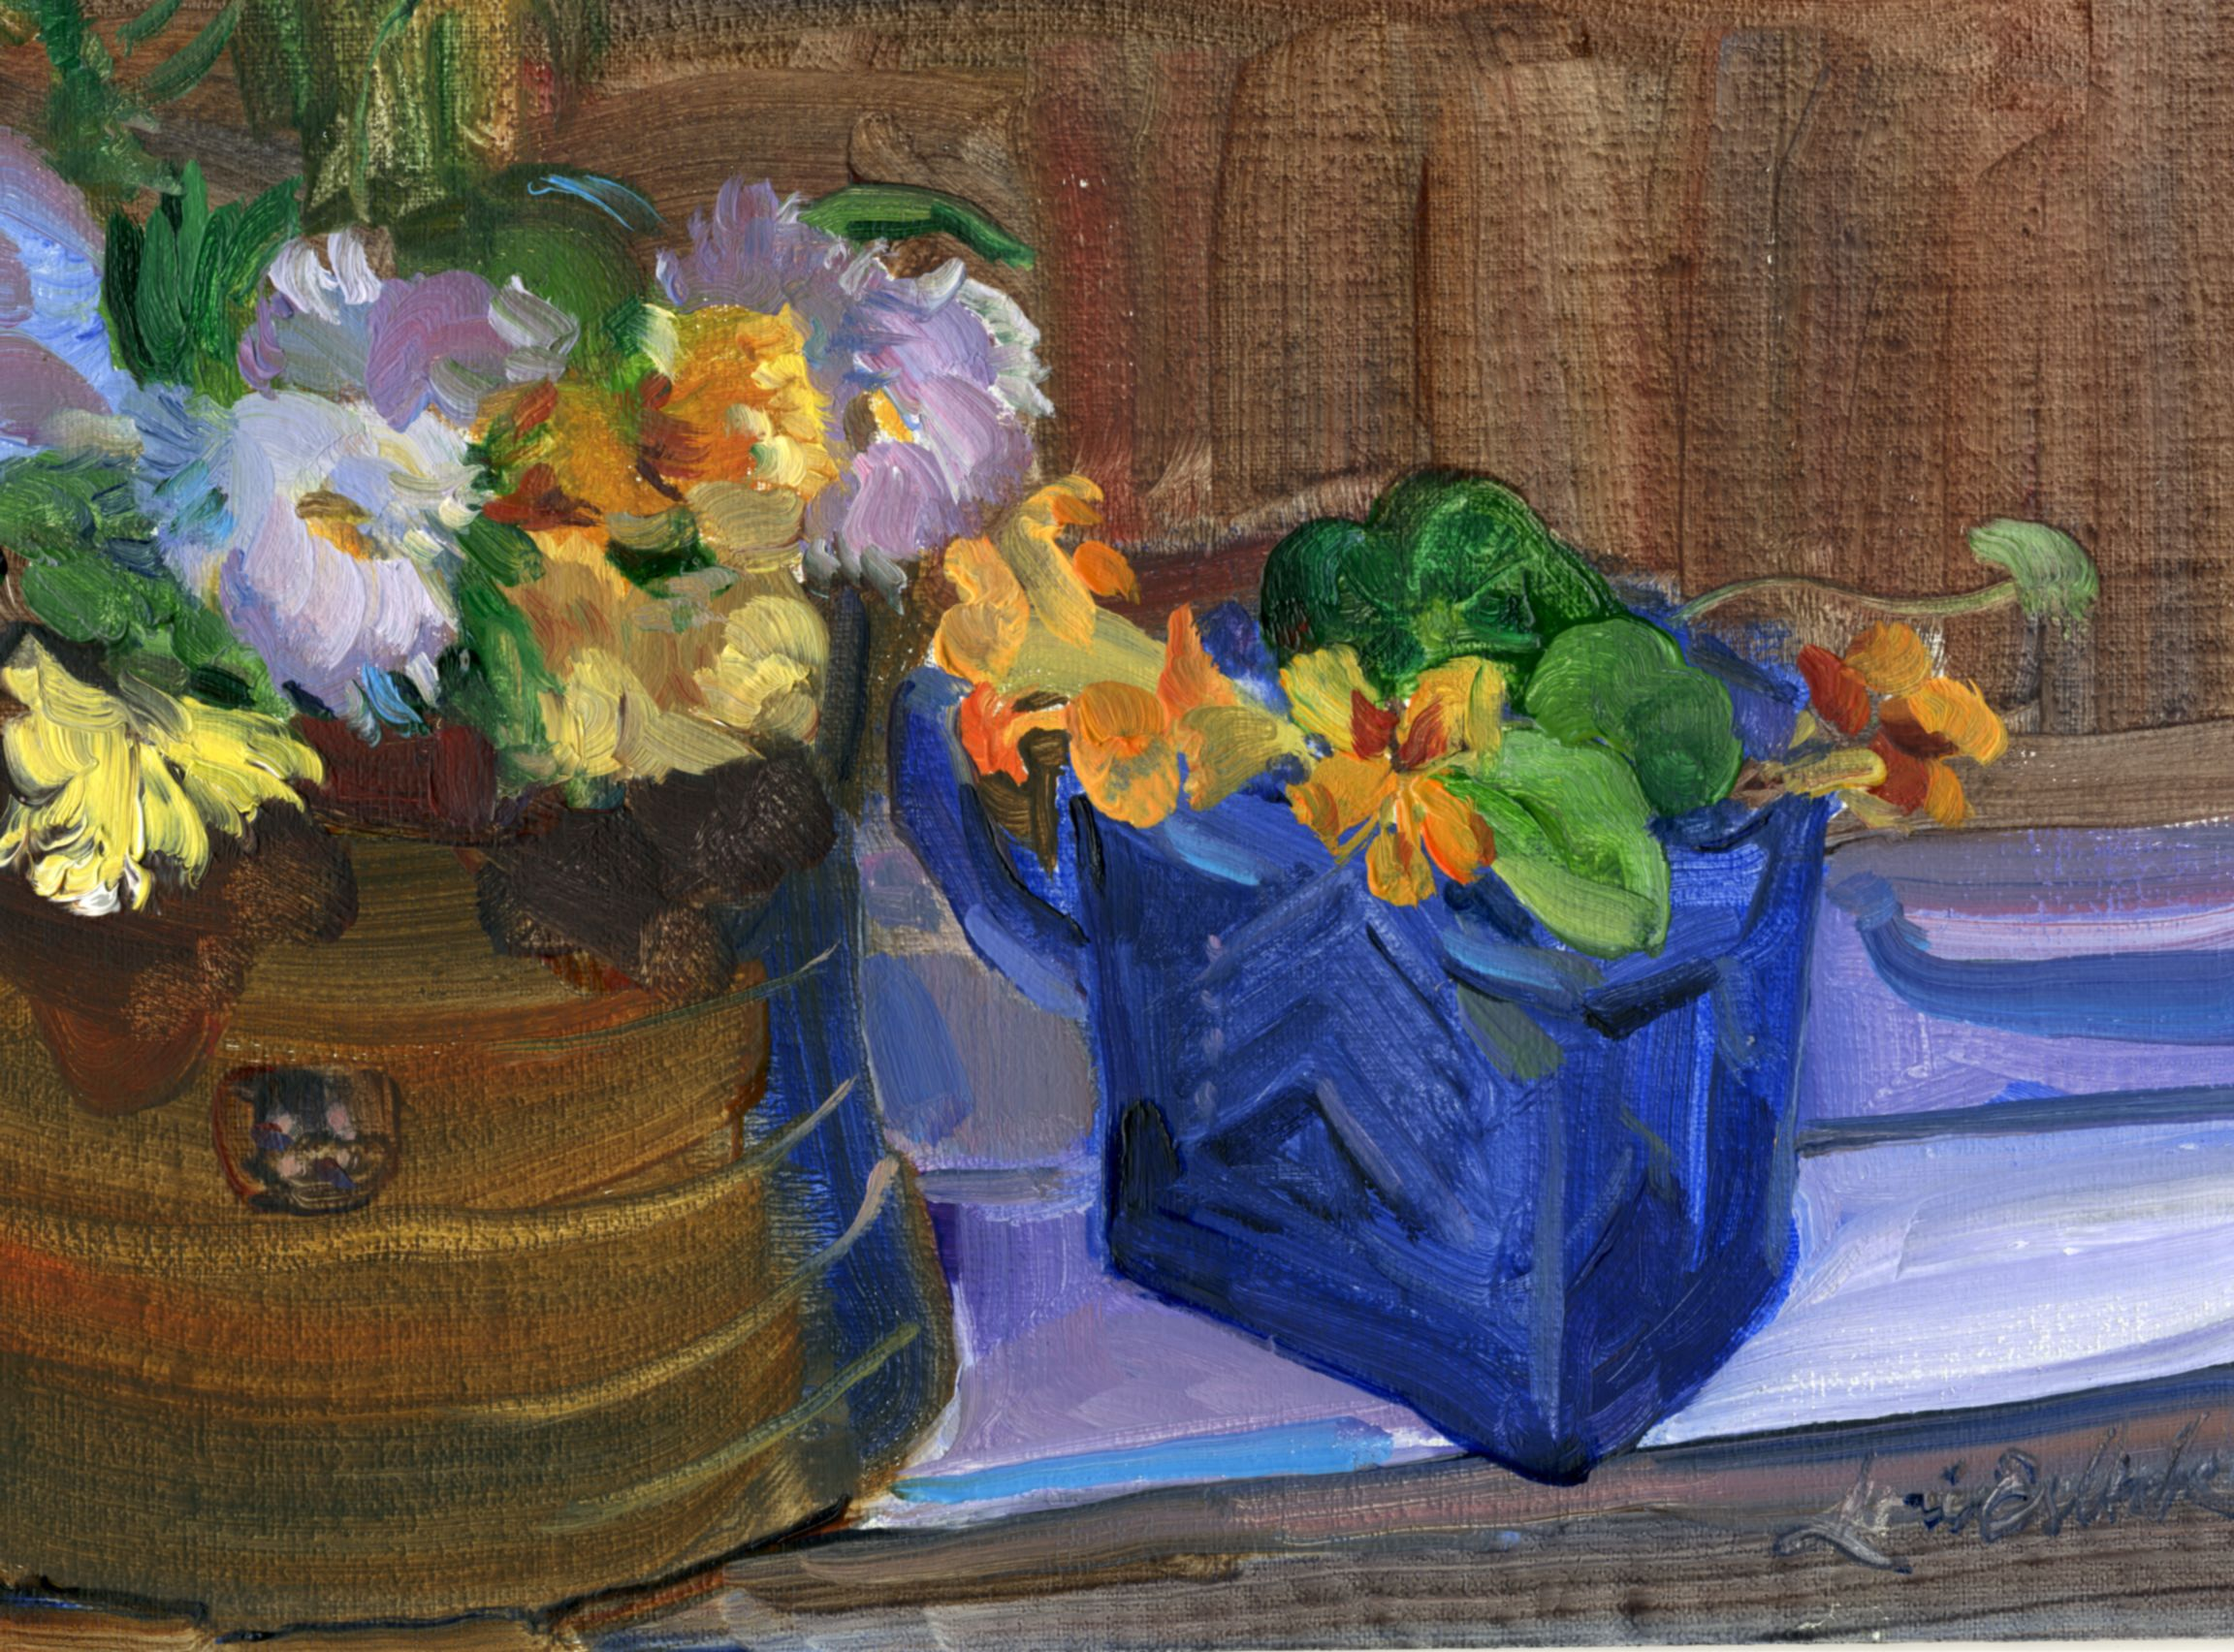 "The last flowers of 2015 from our garden. I picked them and brought them into the studio, sat the vases on my windowsill and painted them. 7"" x 5"" oil on panel. *for sale"